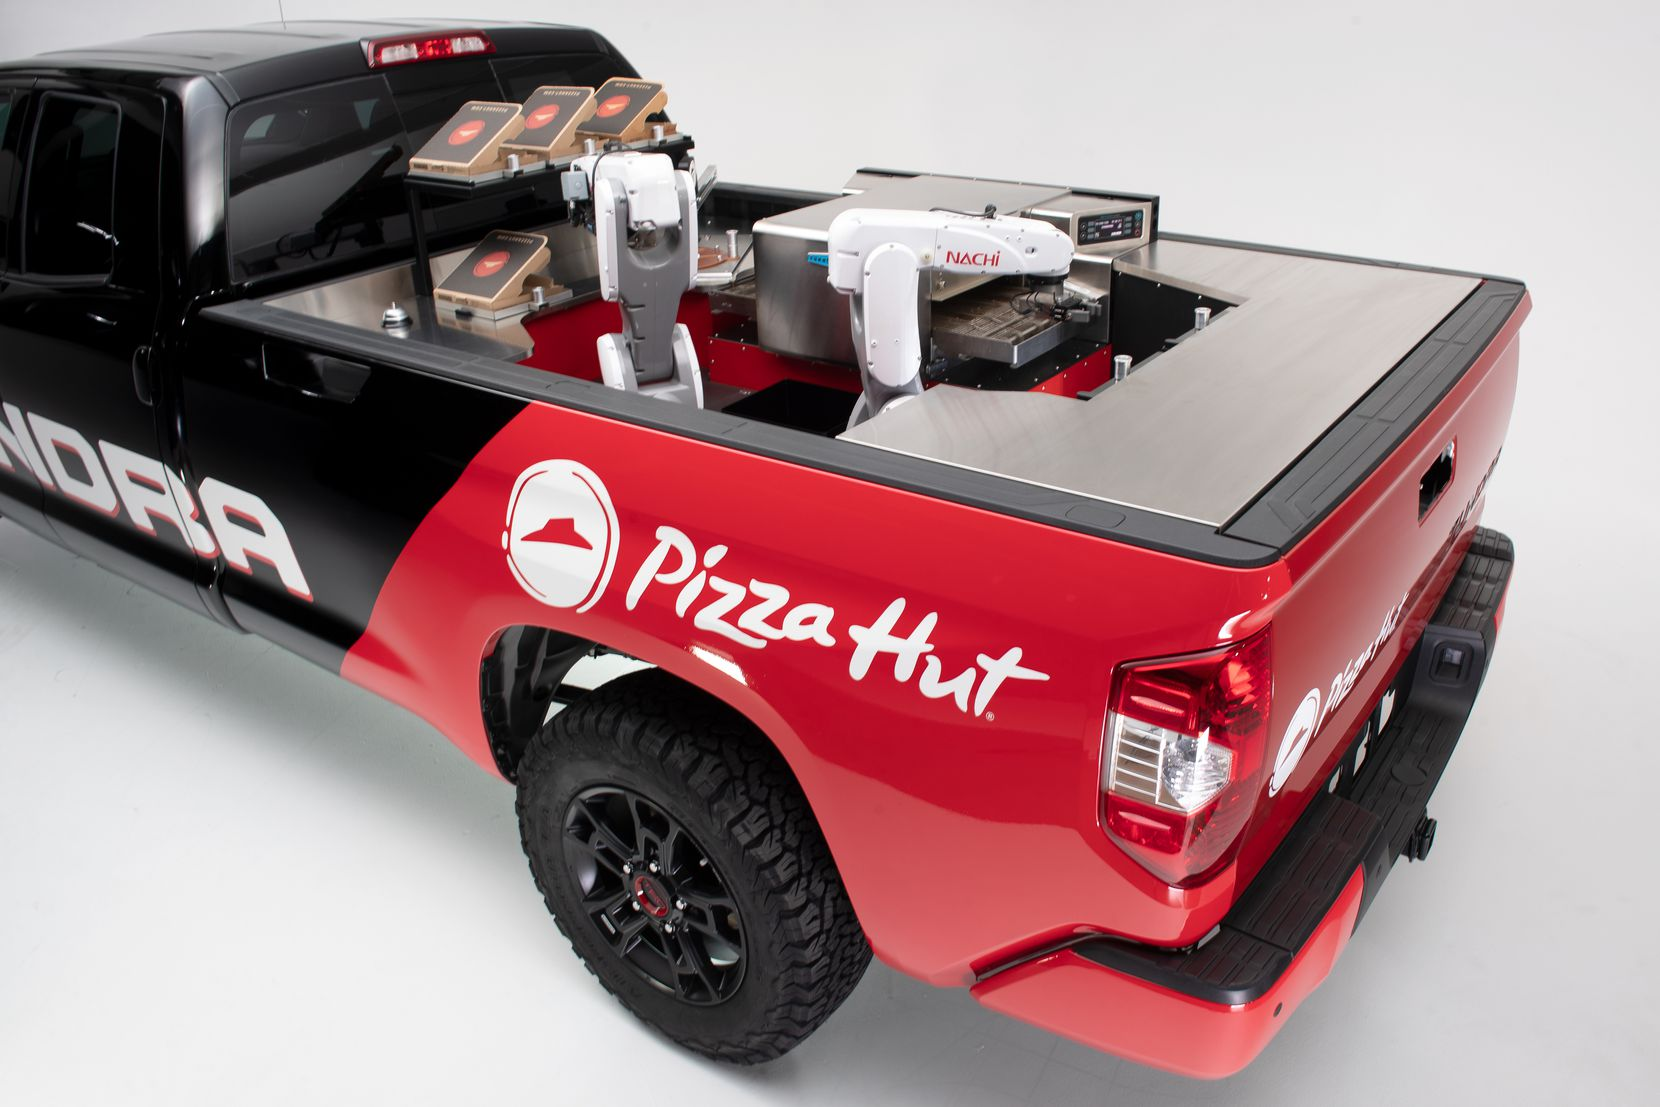 The prototype Tundra PIE Pro developed by Toyota and Pizza Hut.